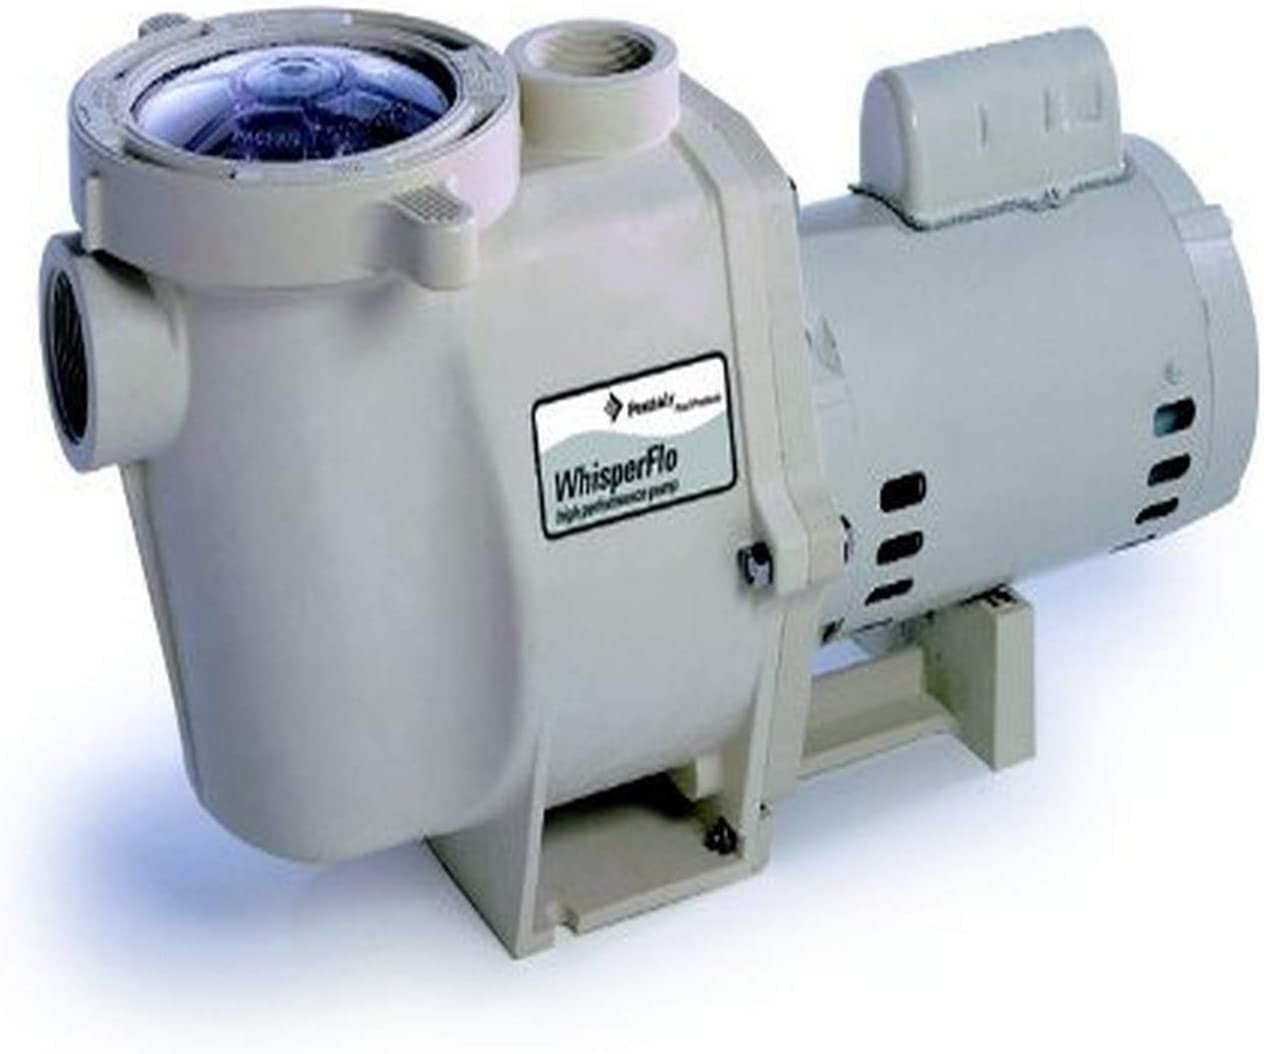 Pentair 011775 WhisperFlo High Performance Standard Efficiency Single Speed Up Rated Pool Pump, 2 1/2 Horsepower, 230 Volt, 1 Phase